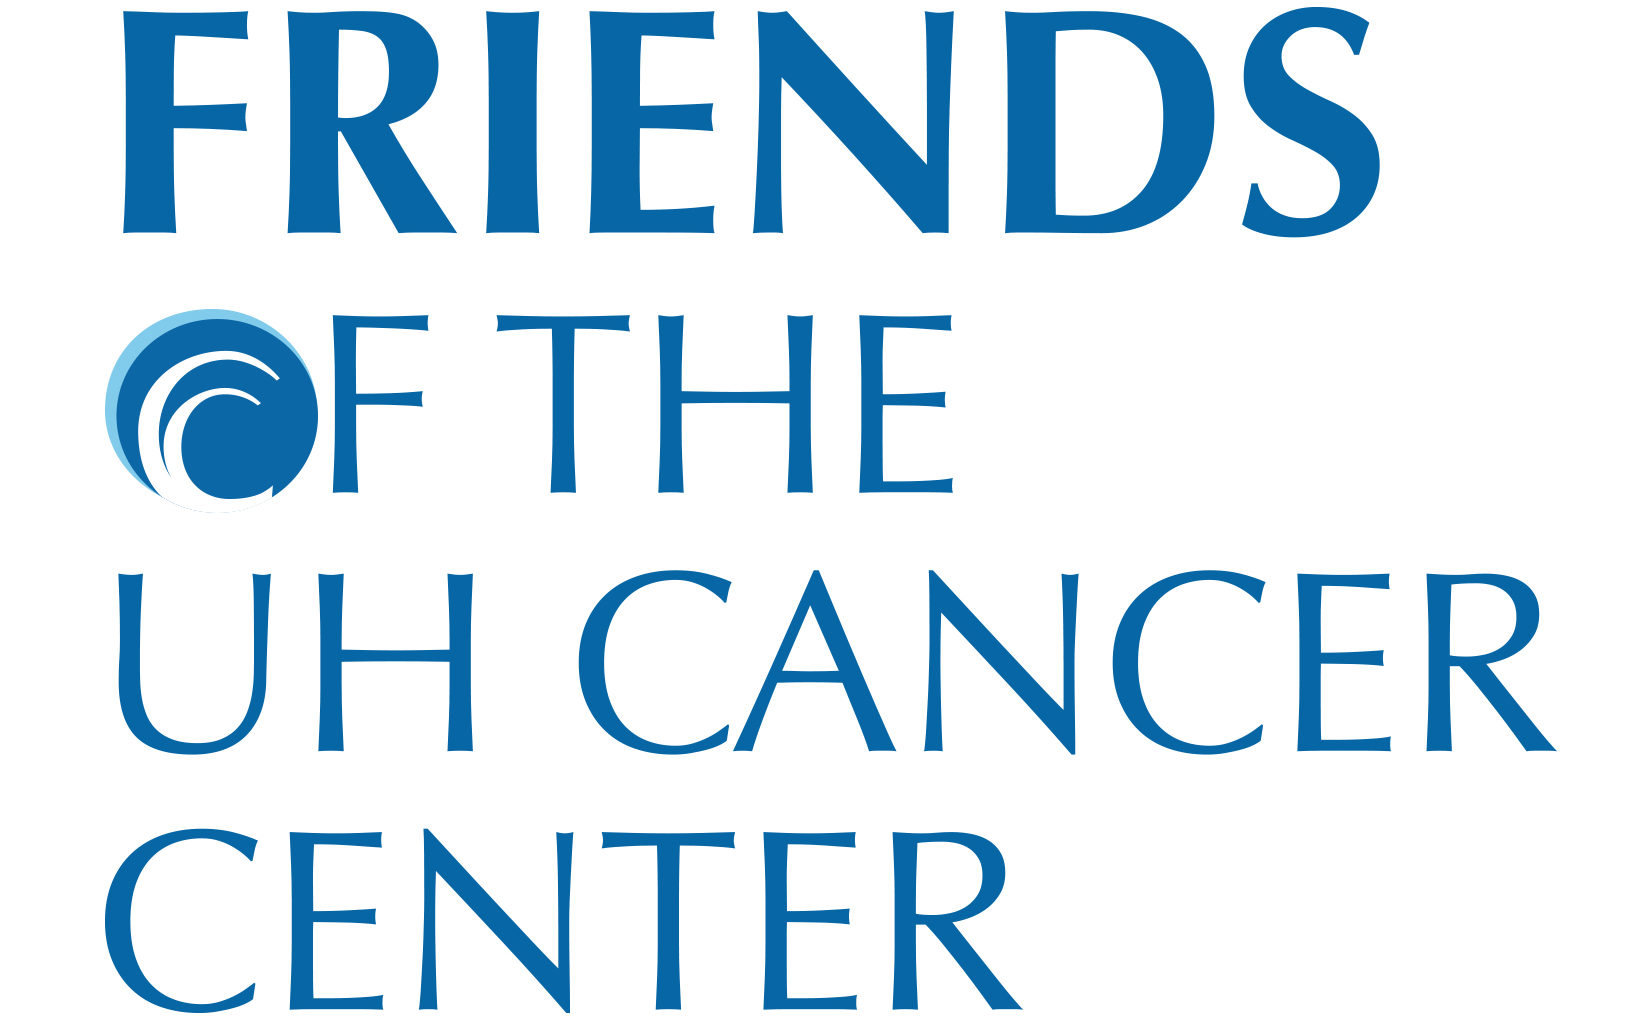 Friends of UH Cancer Center